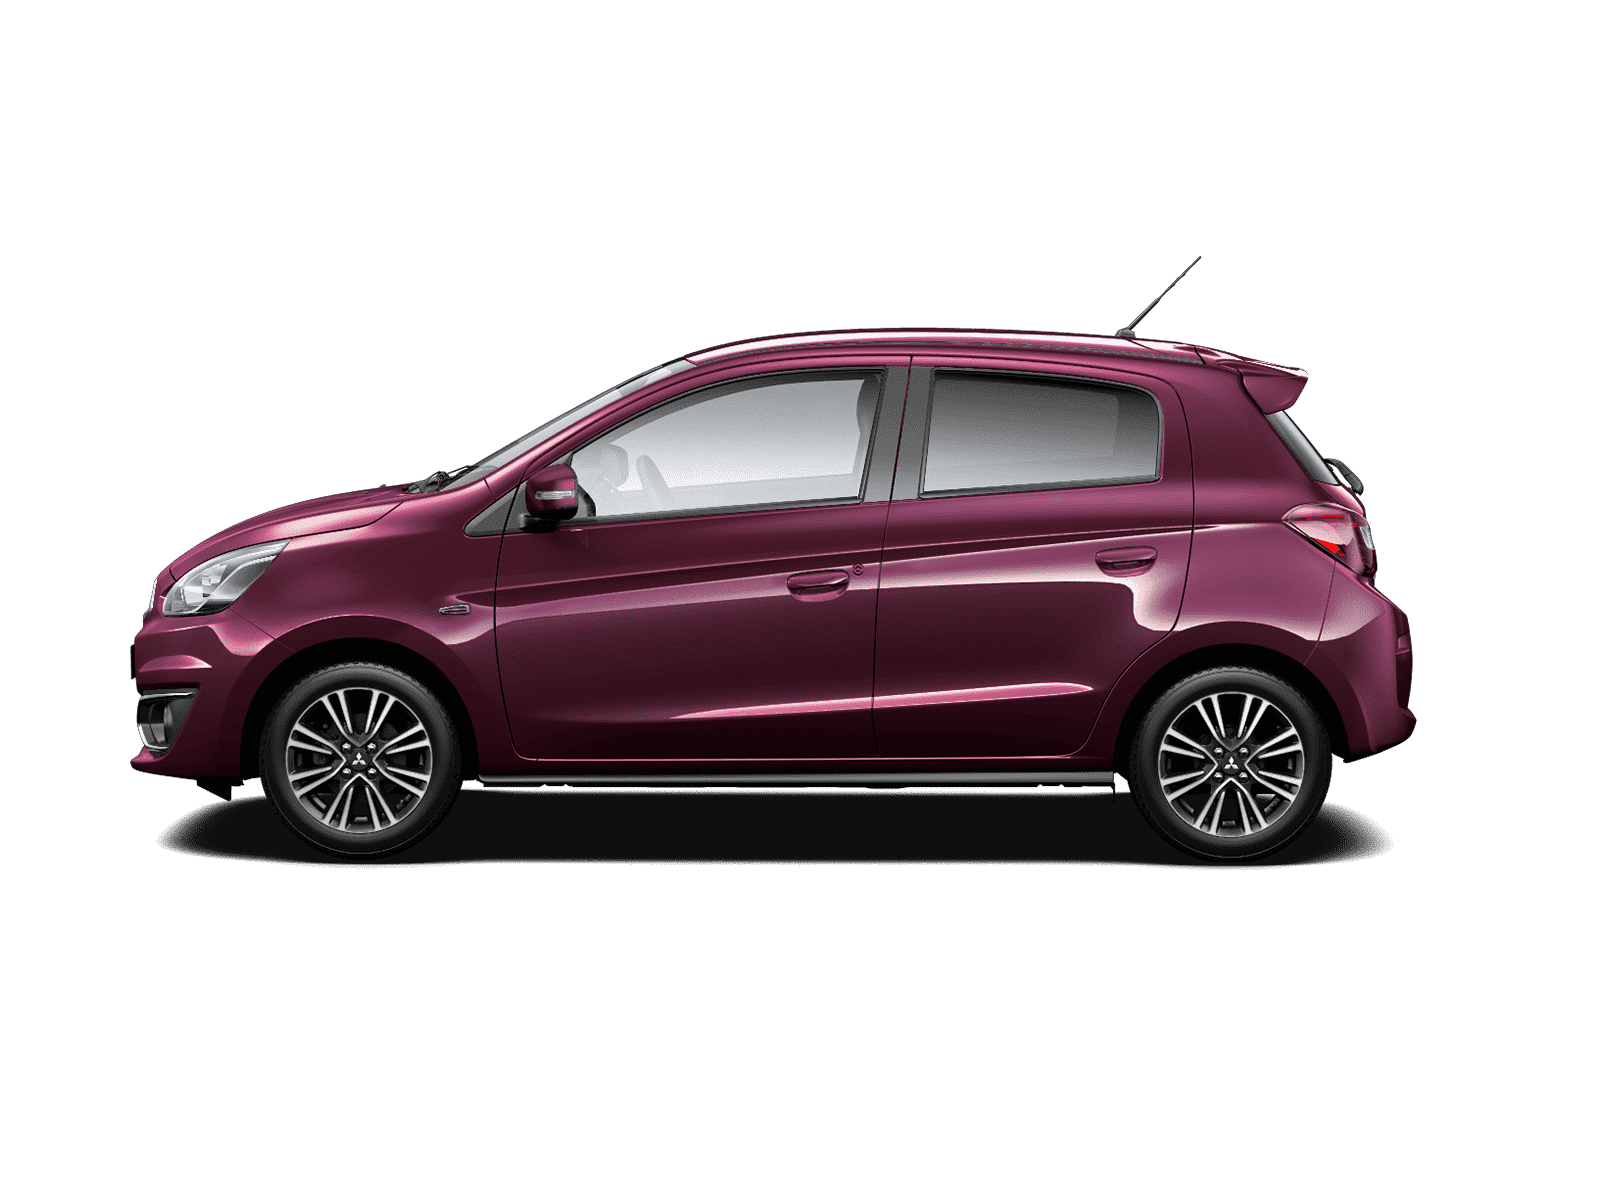 Mitsubishi Mirage Purple Berry